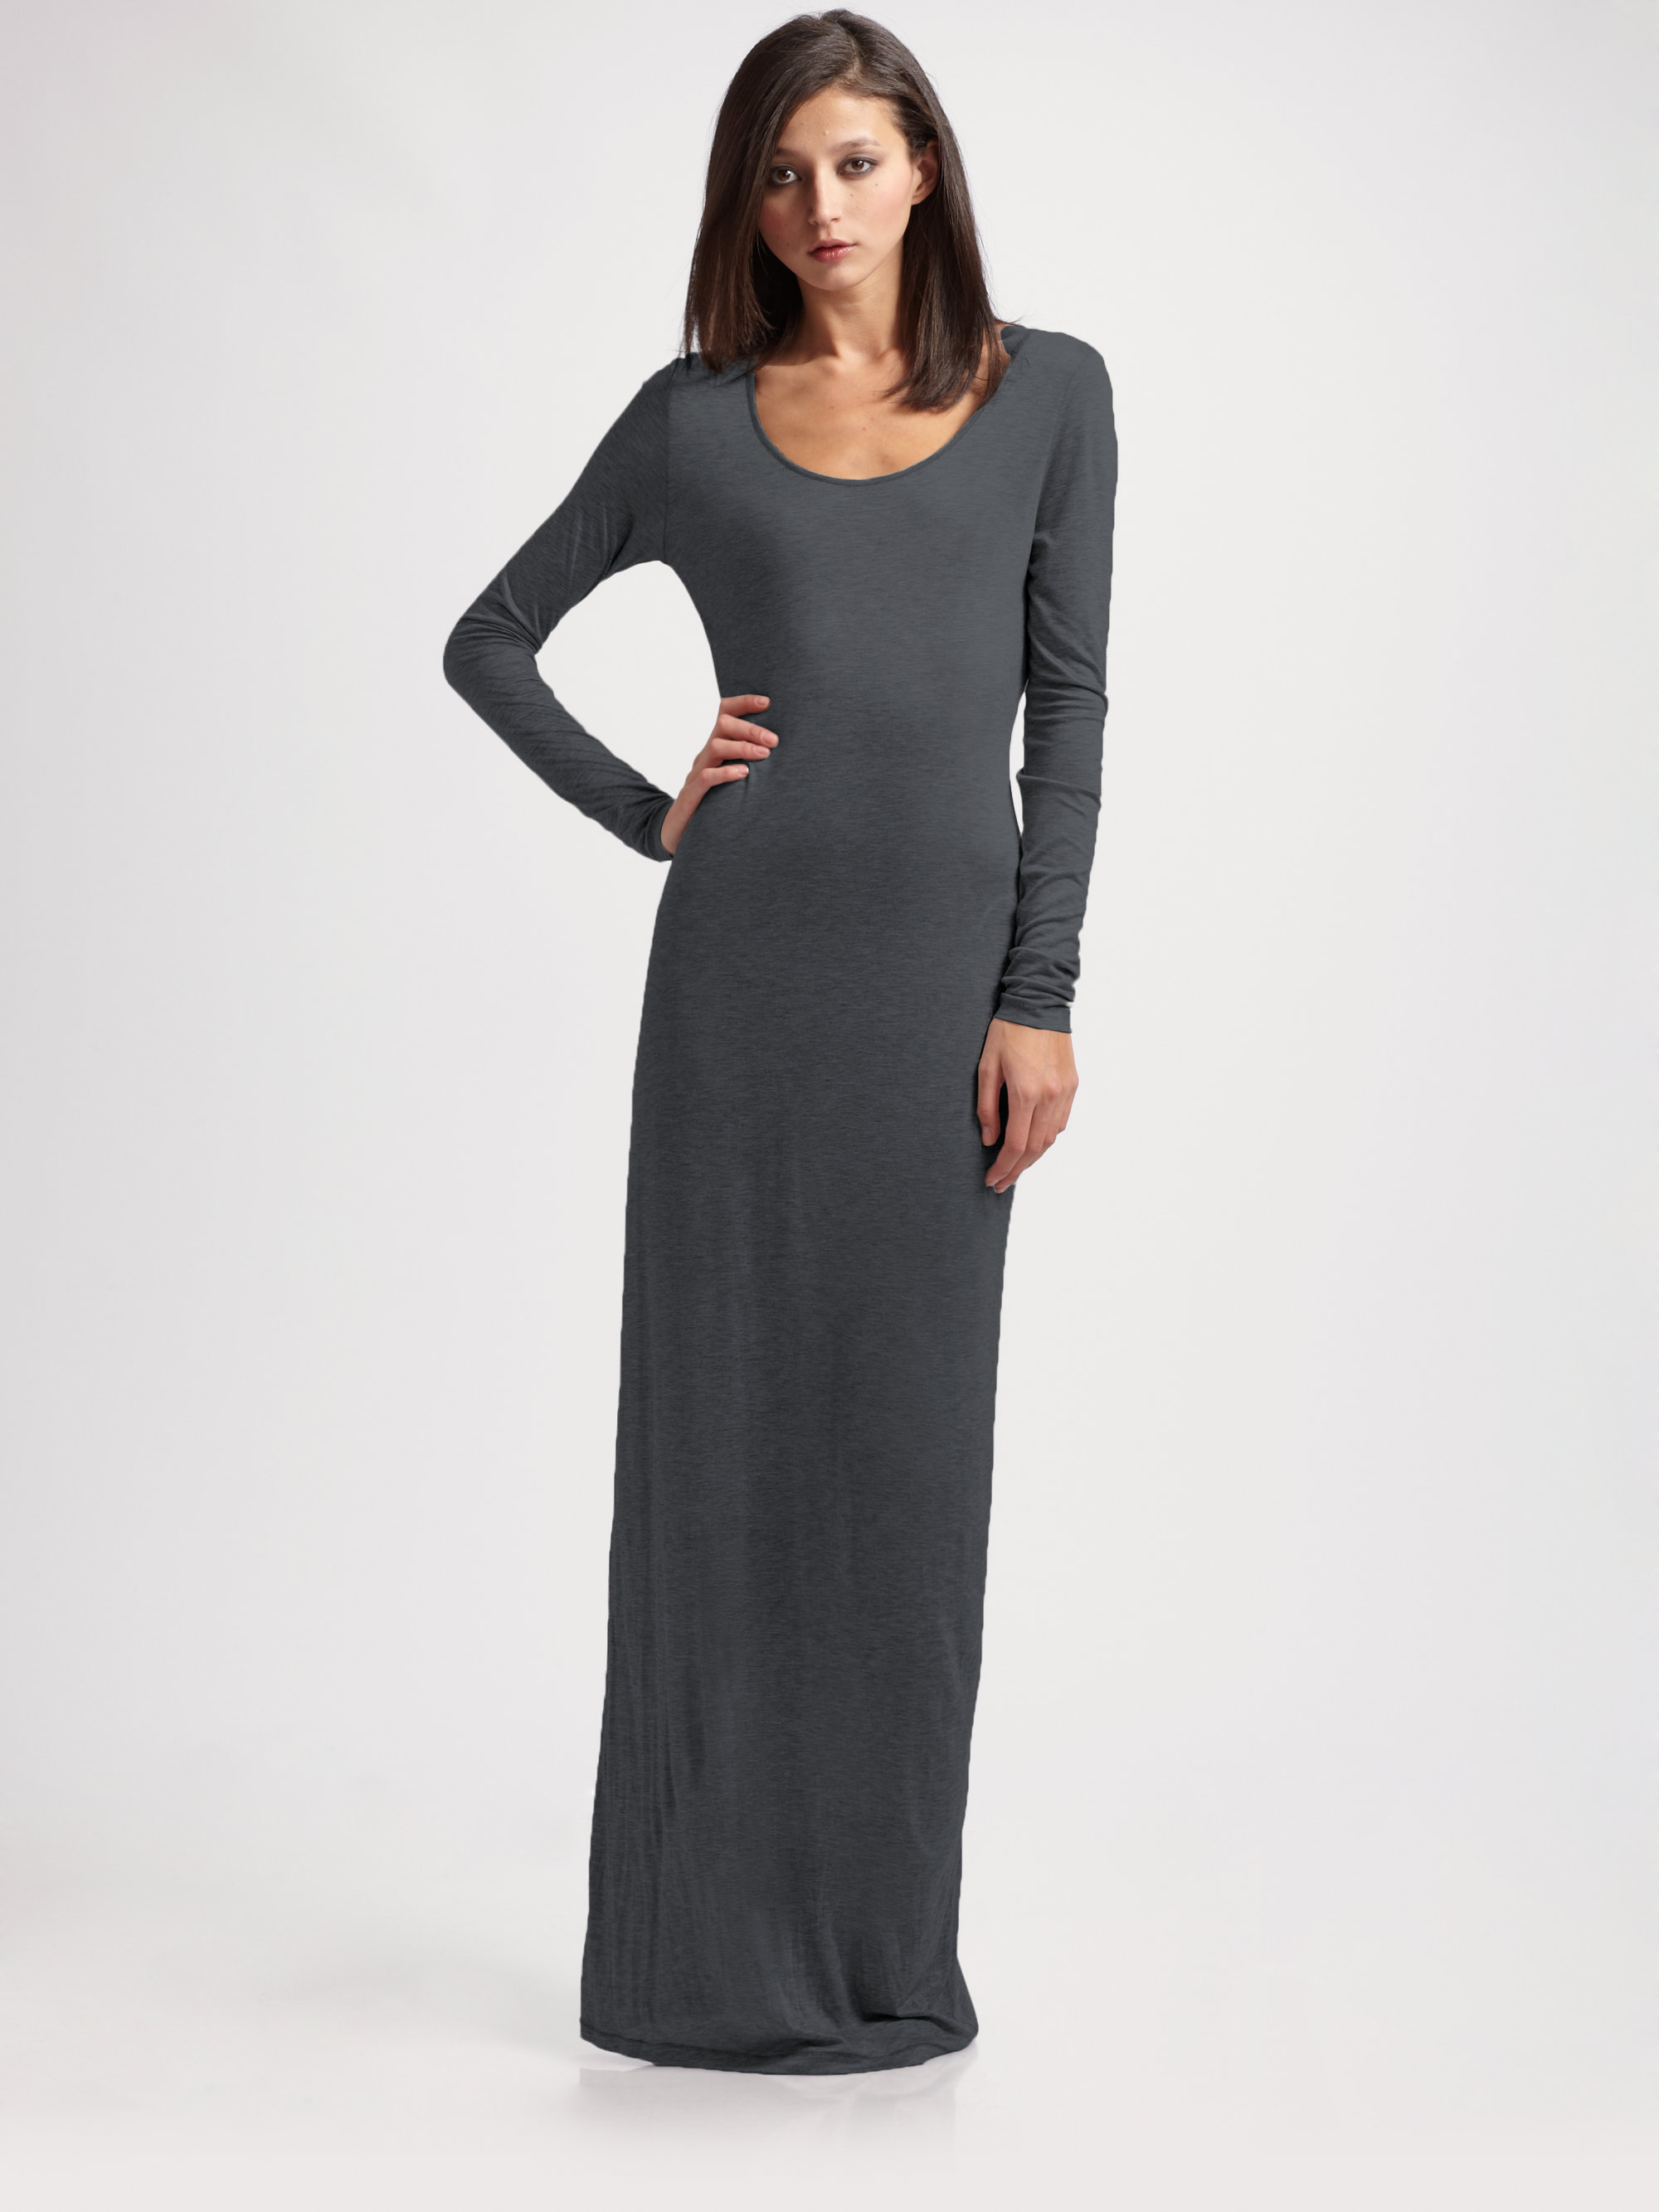 Acne studios Long Knit Maxi Dress in Gray | Lyst